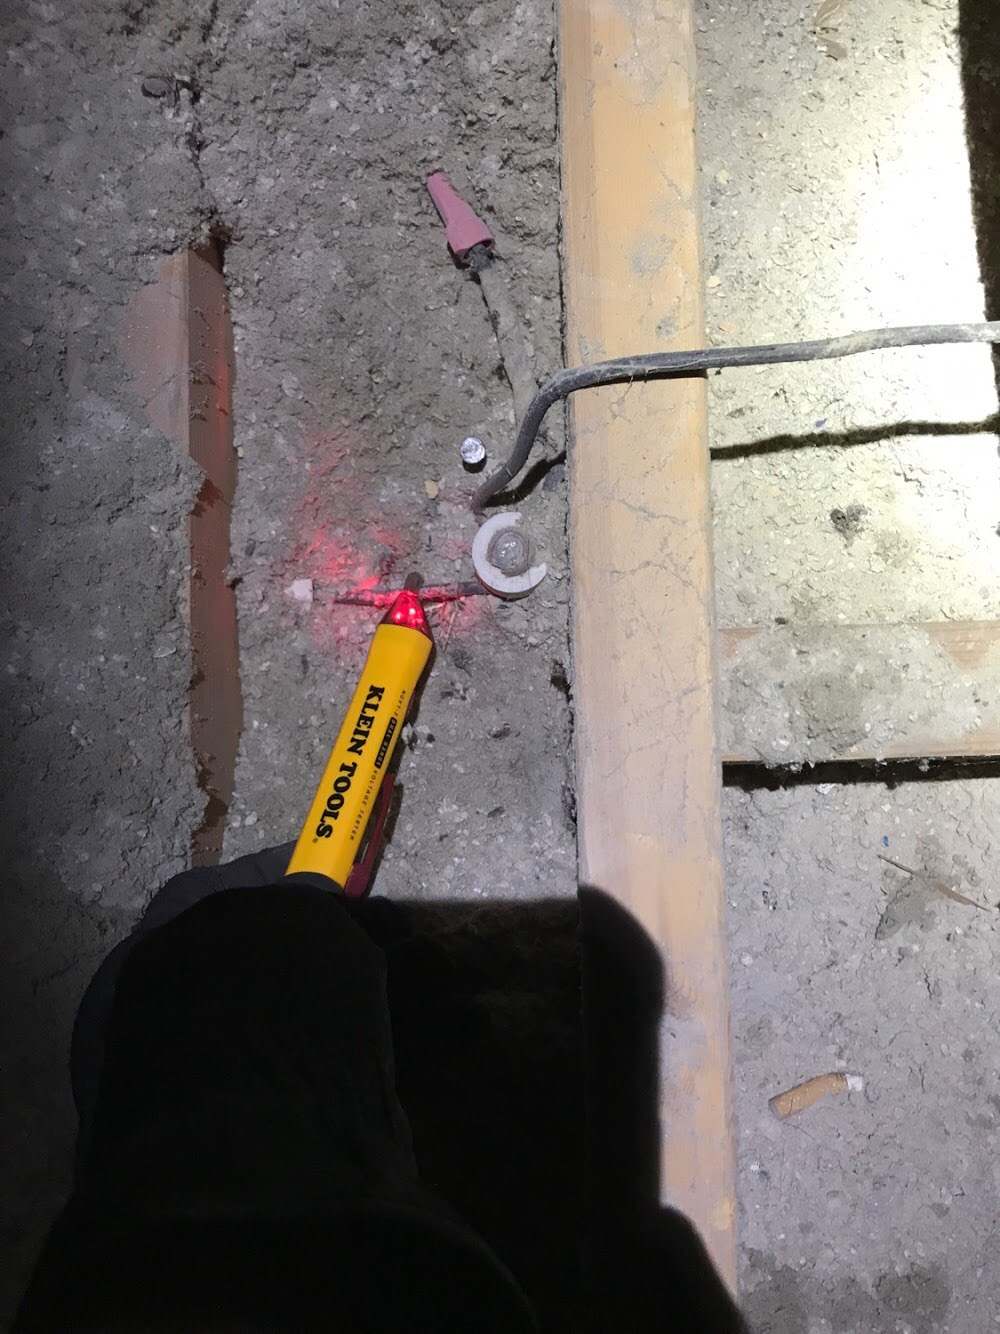 medium resolution of live knob and tube wiring in old boise home attic